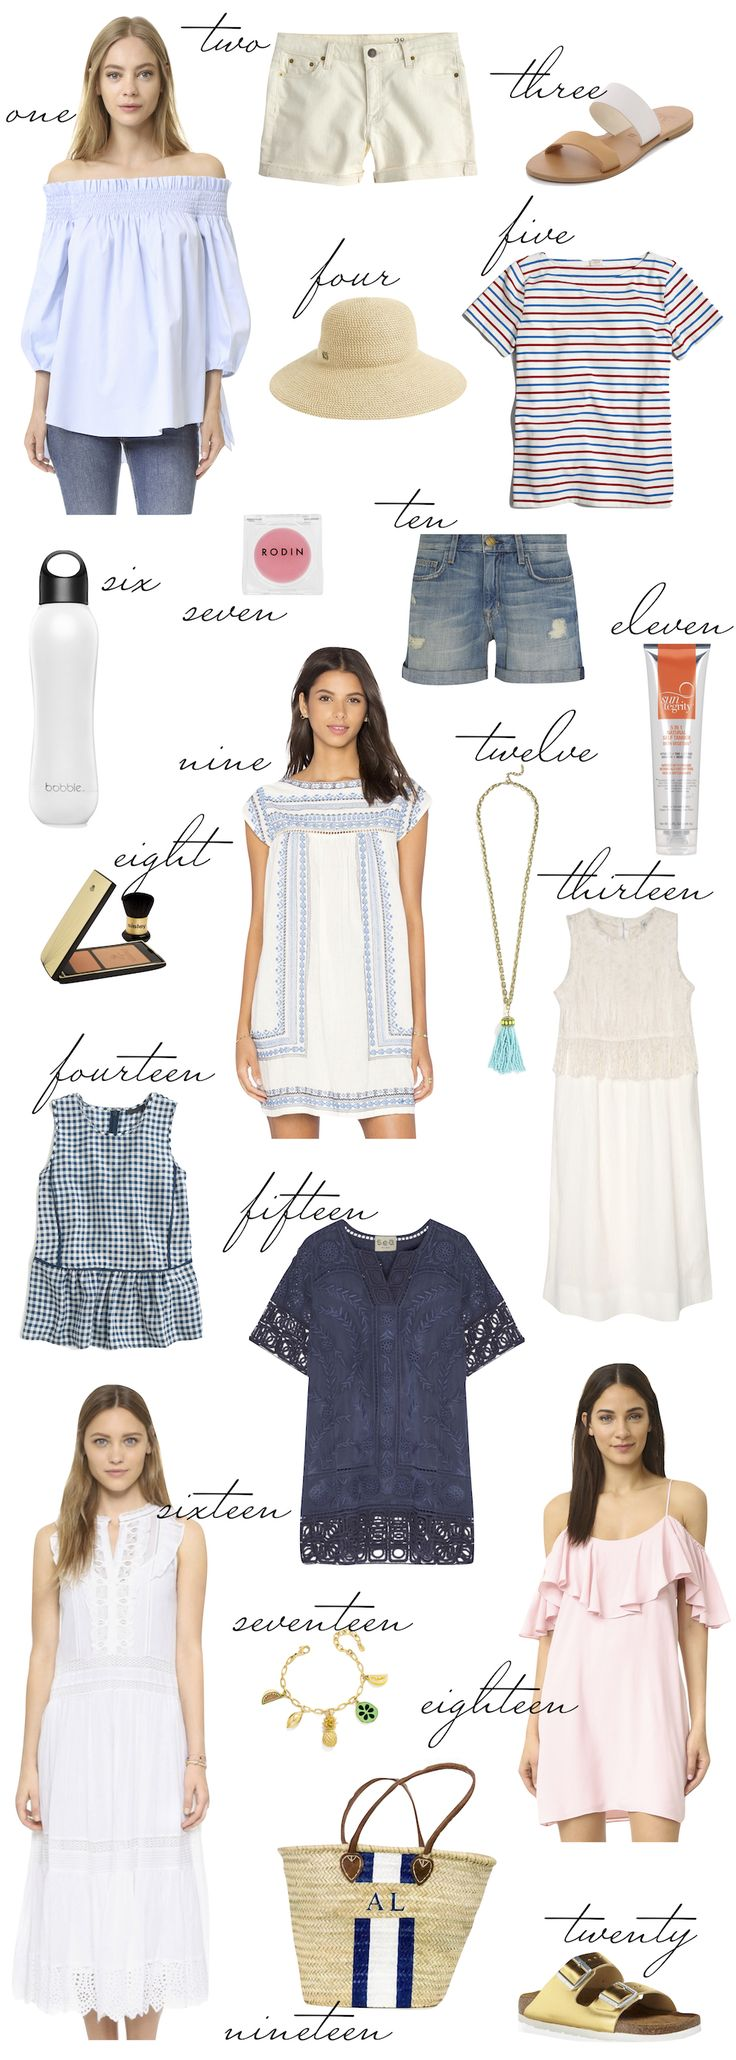 Cape Cod Packing List.                                                                                                                                                     More